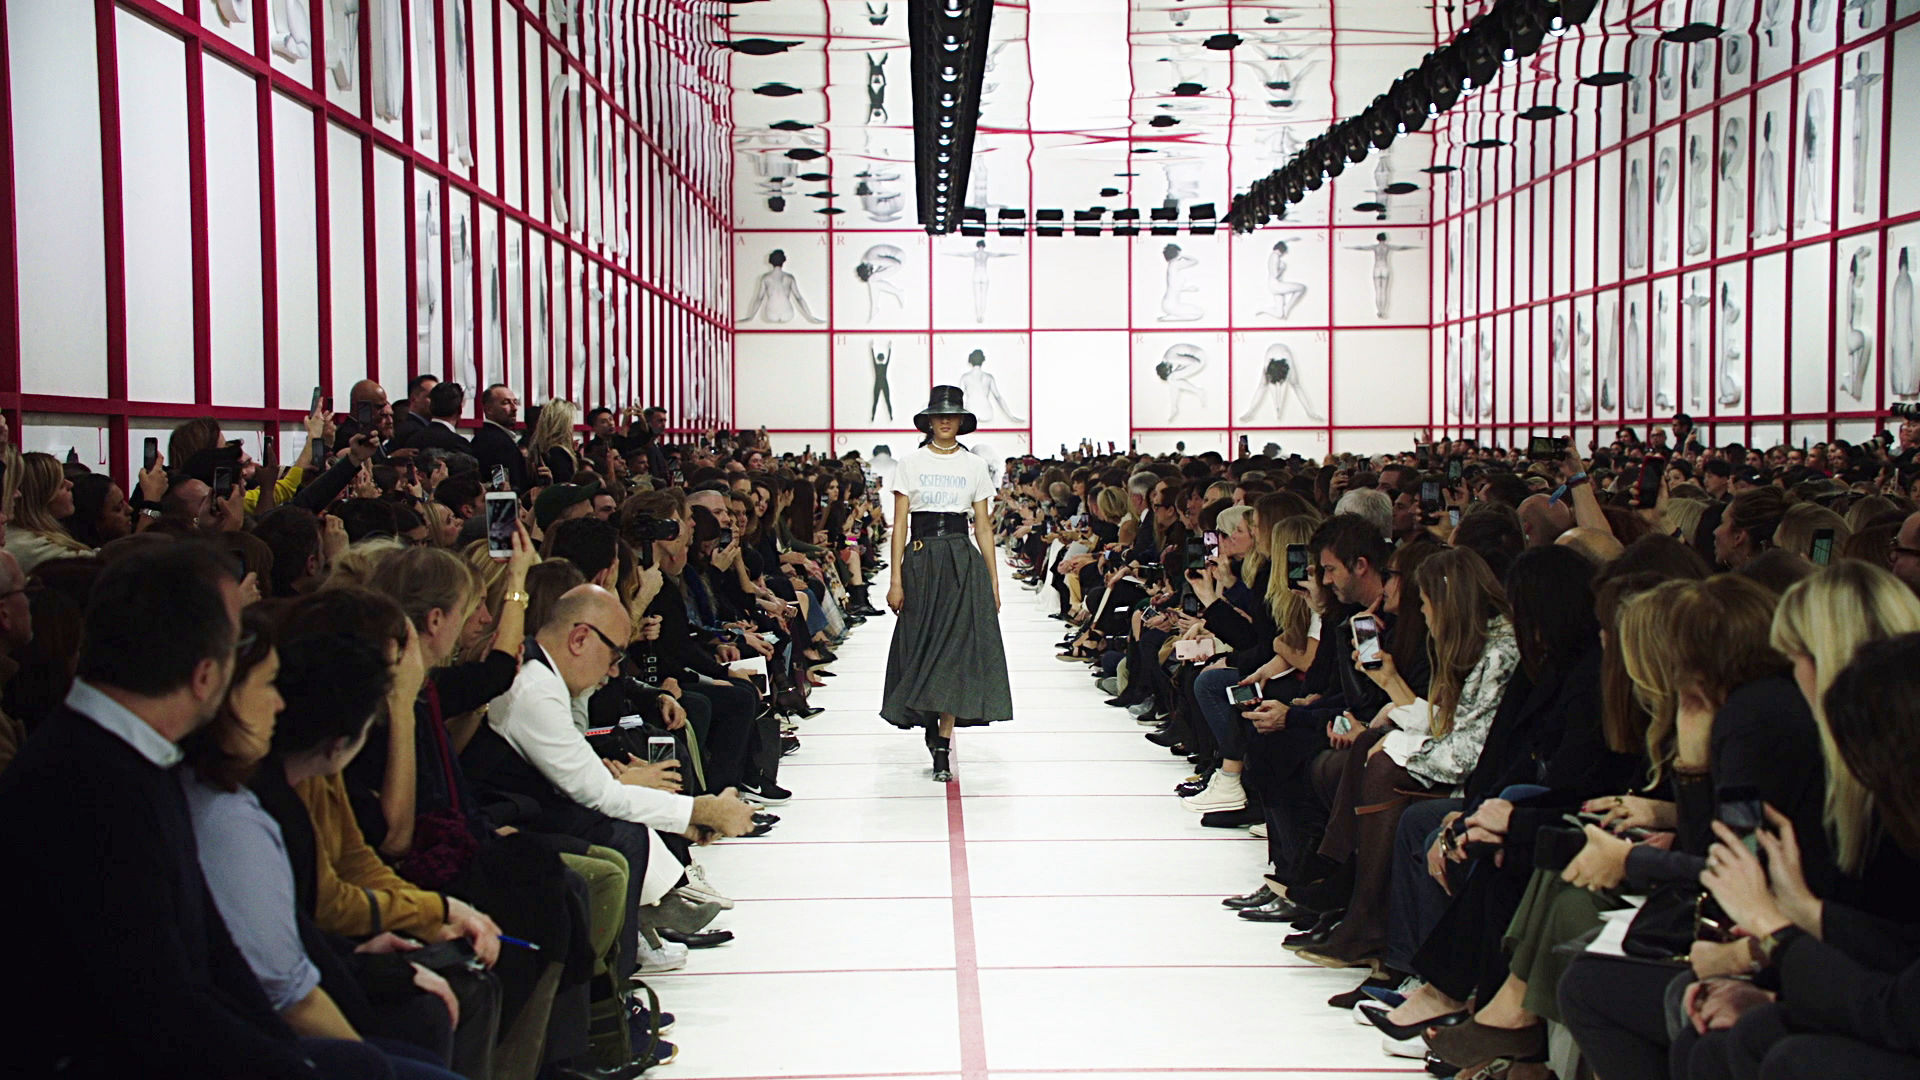 Dior Fall Winter Collection 2019 - Paris Fashion Show